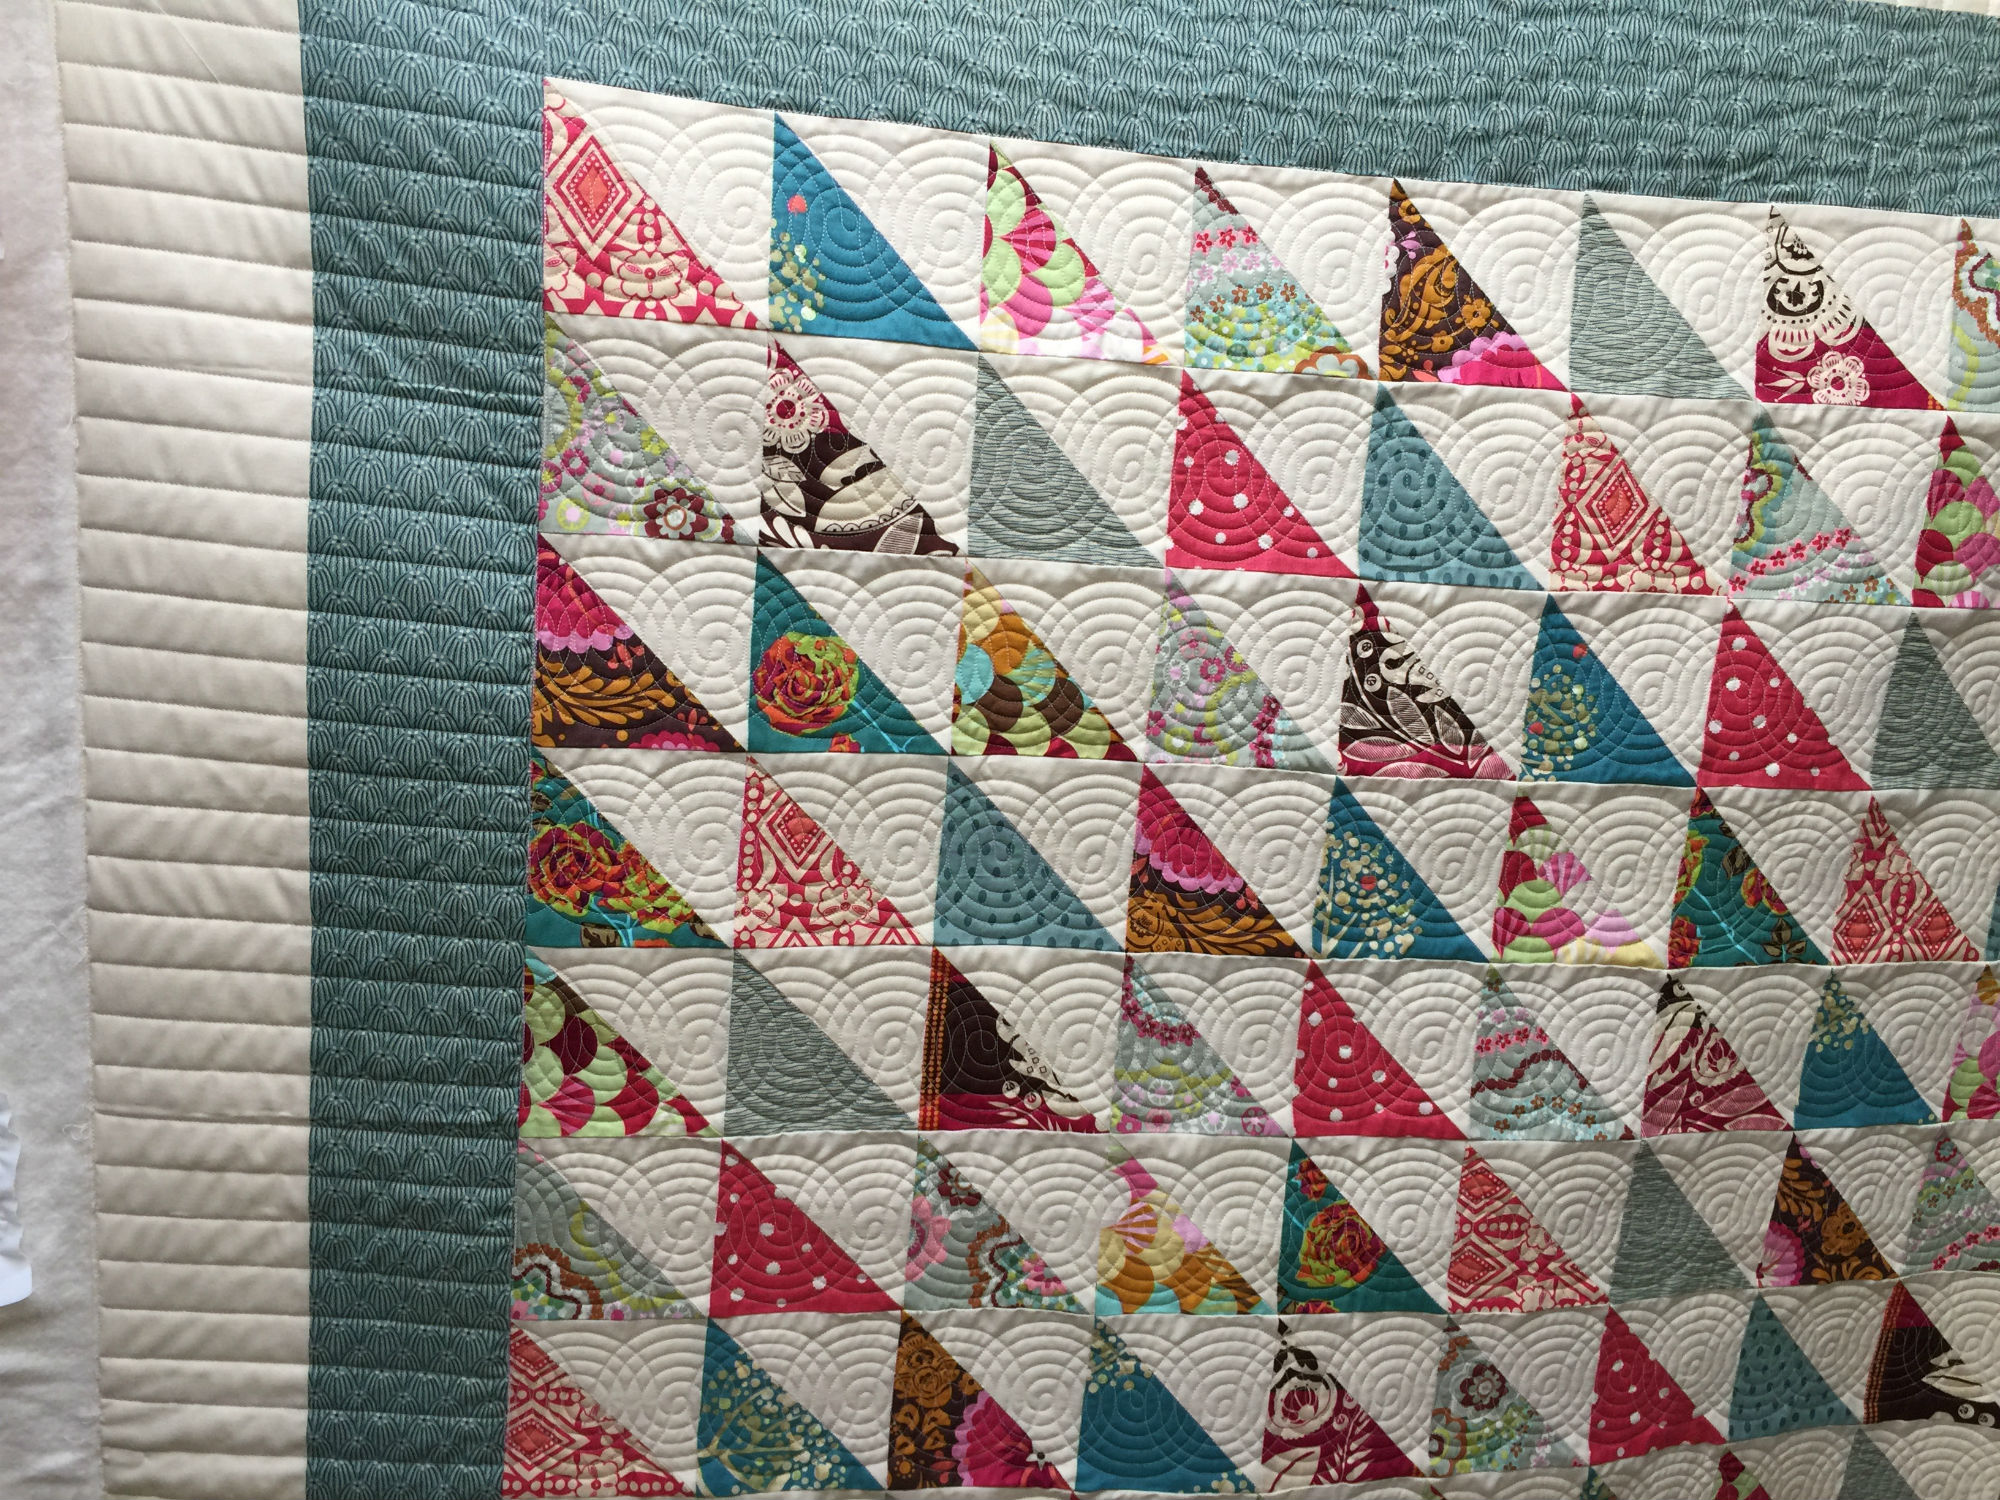 Tina's Half-Square Triangle Quilt - The Quilted Lemon : half square triangle quilt - Adamdwight.com